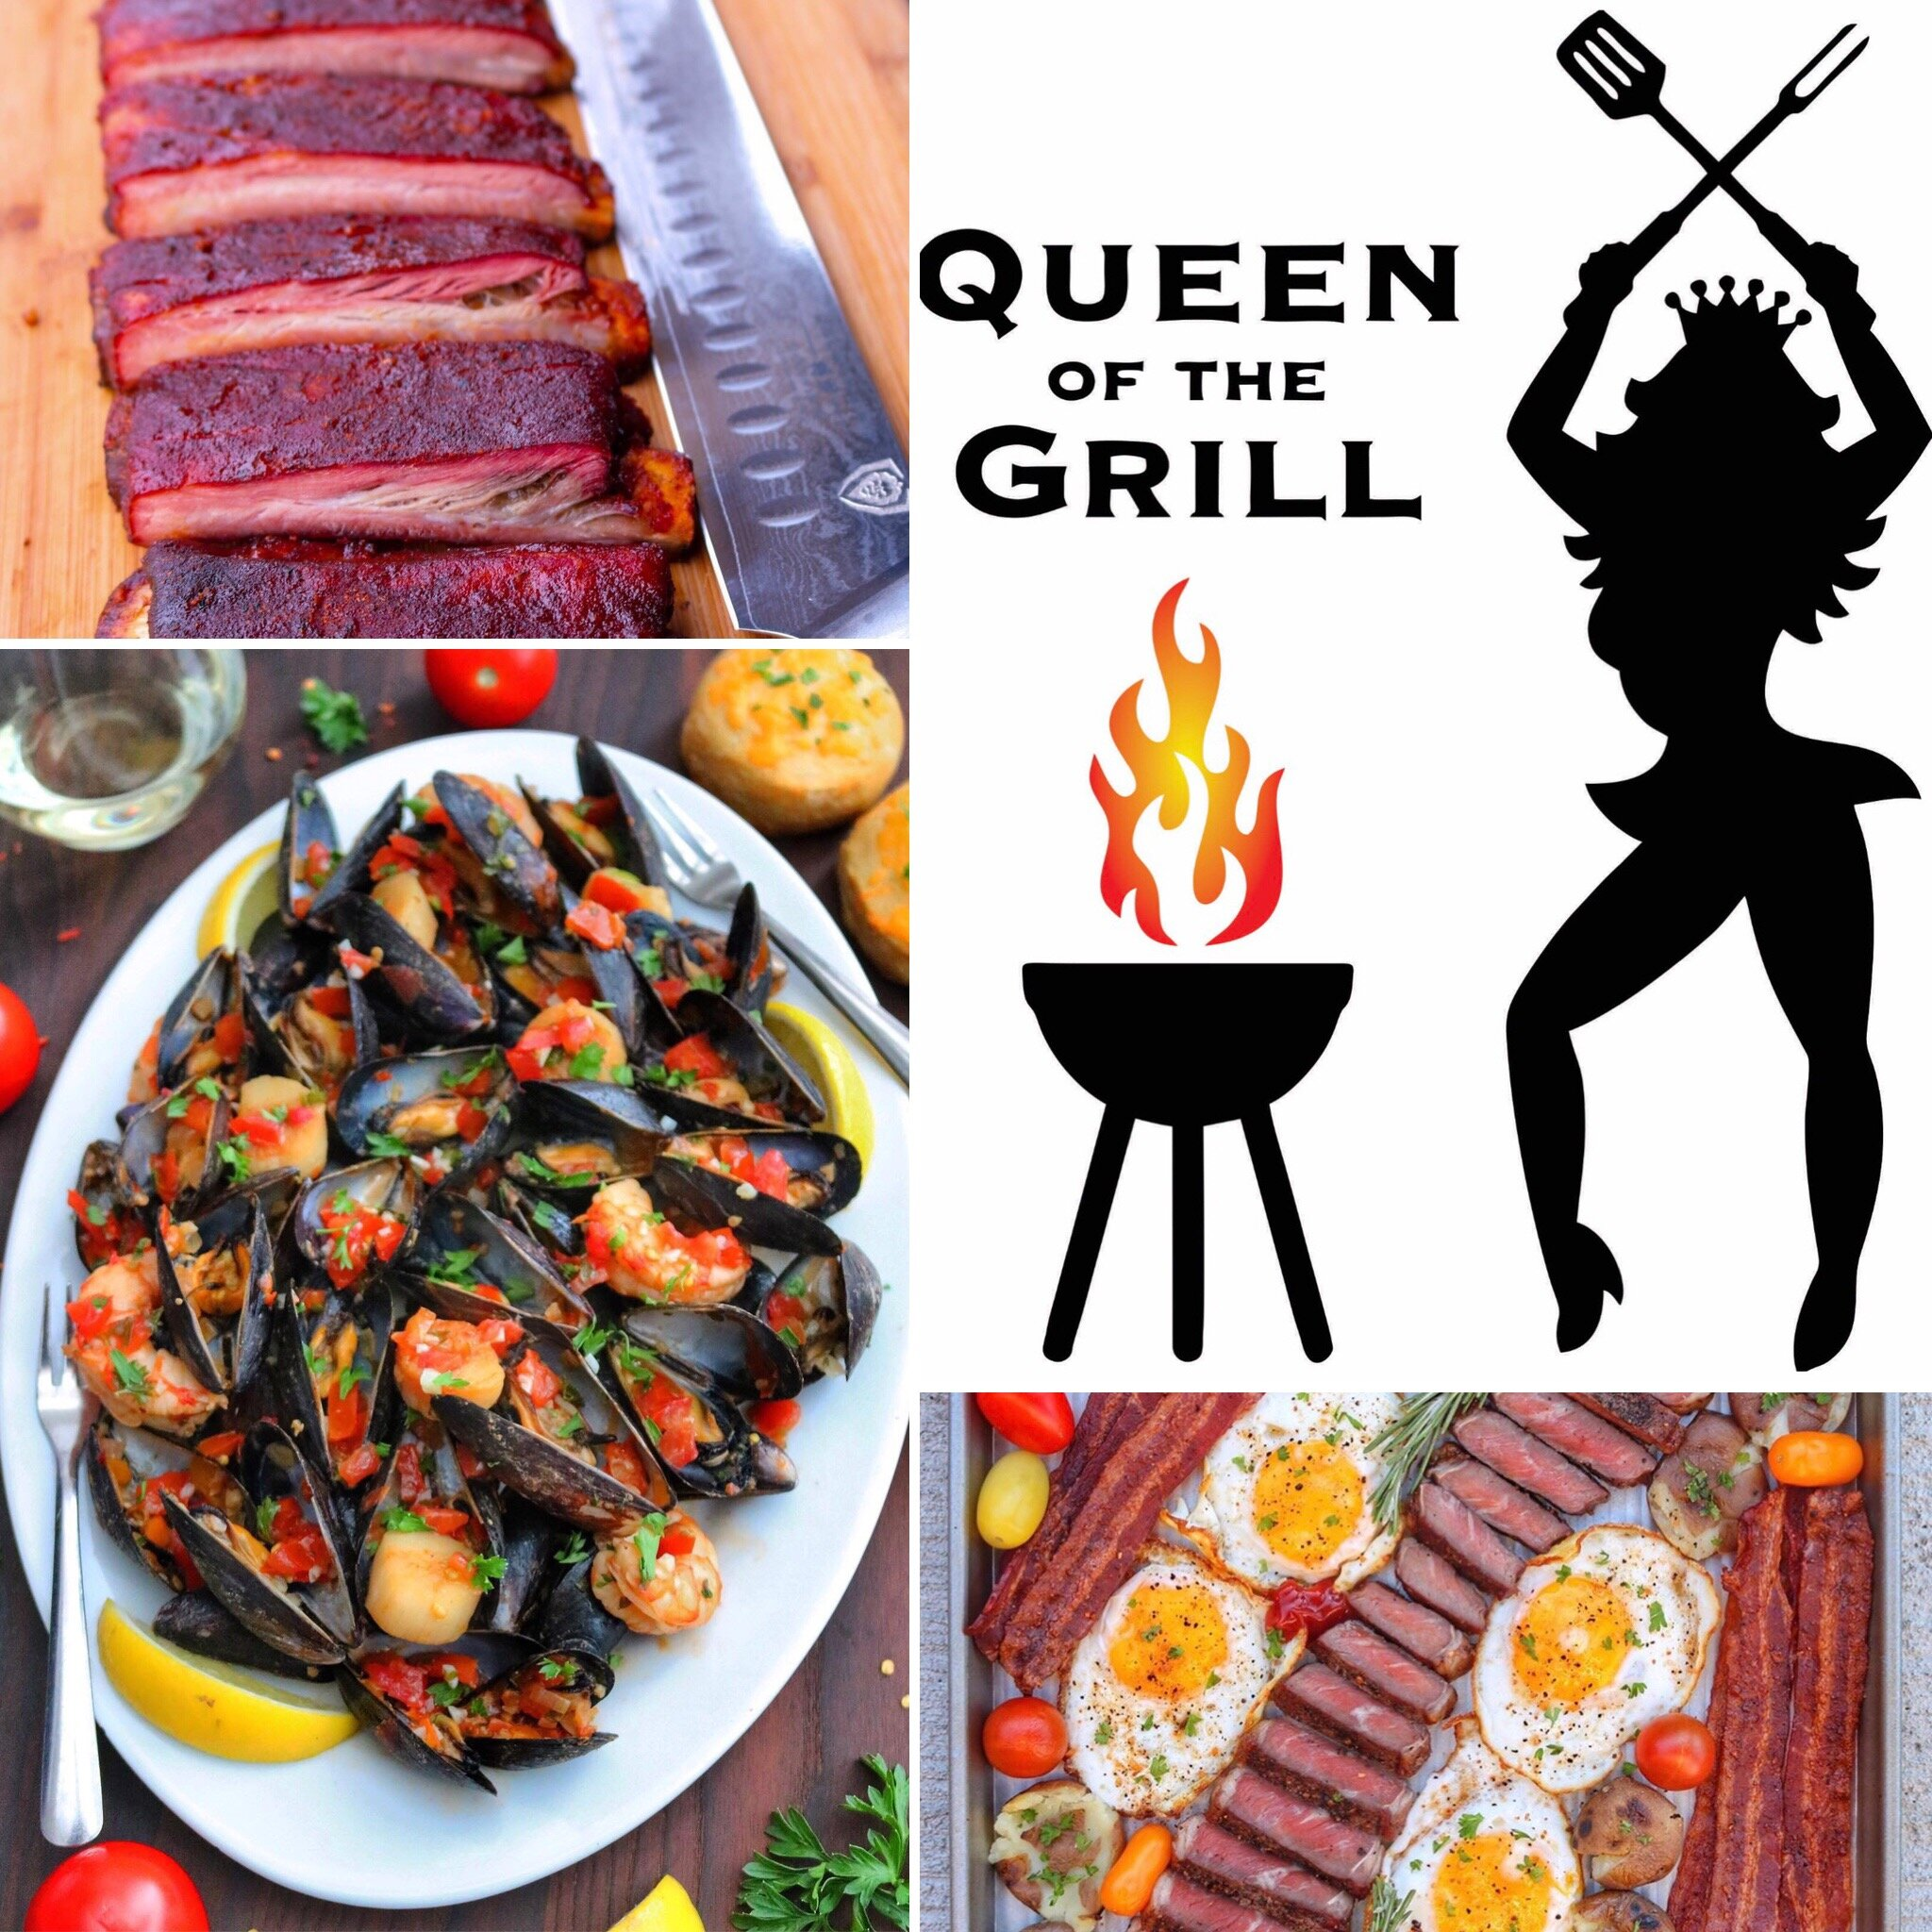 Queen Of The Grill Ribs, Seafood Platter and Breakfast!